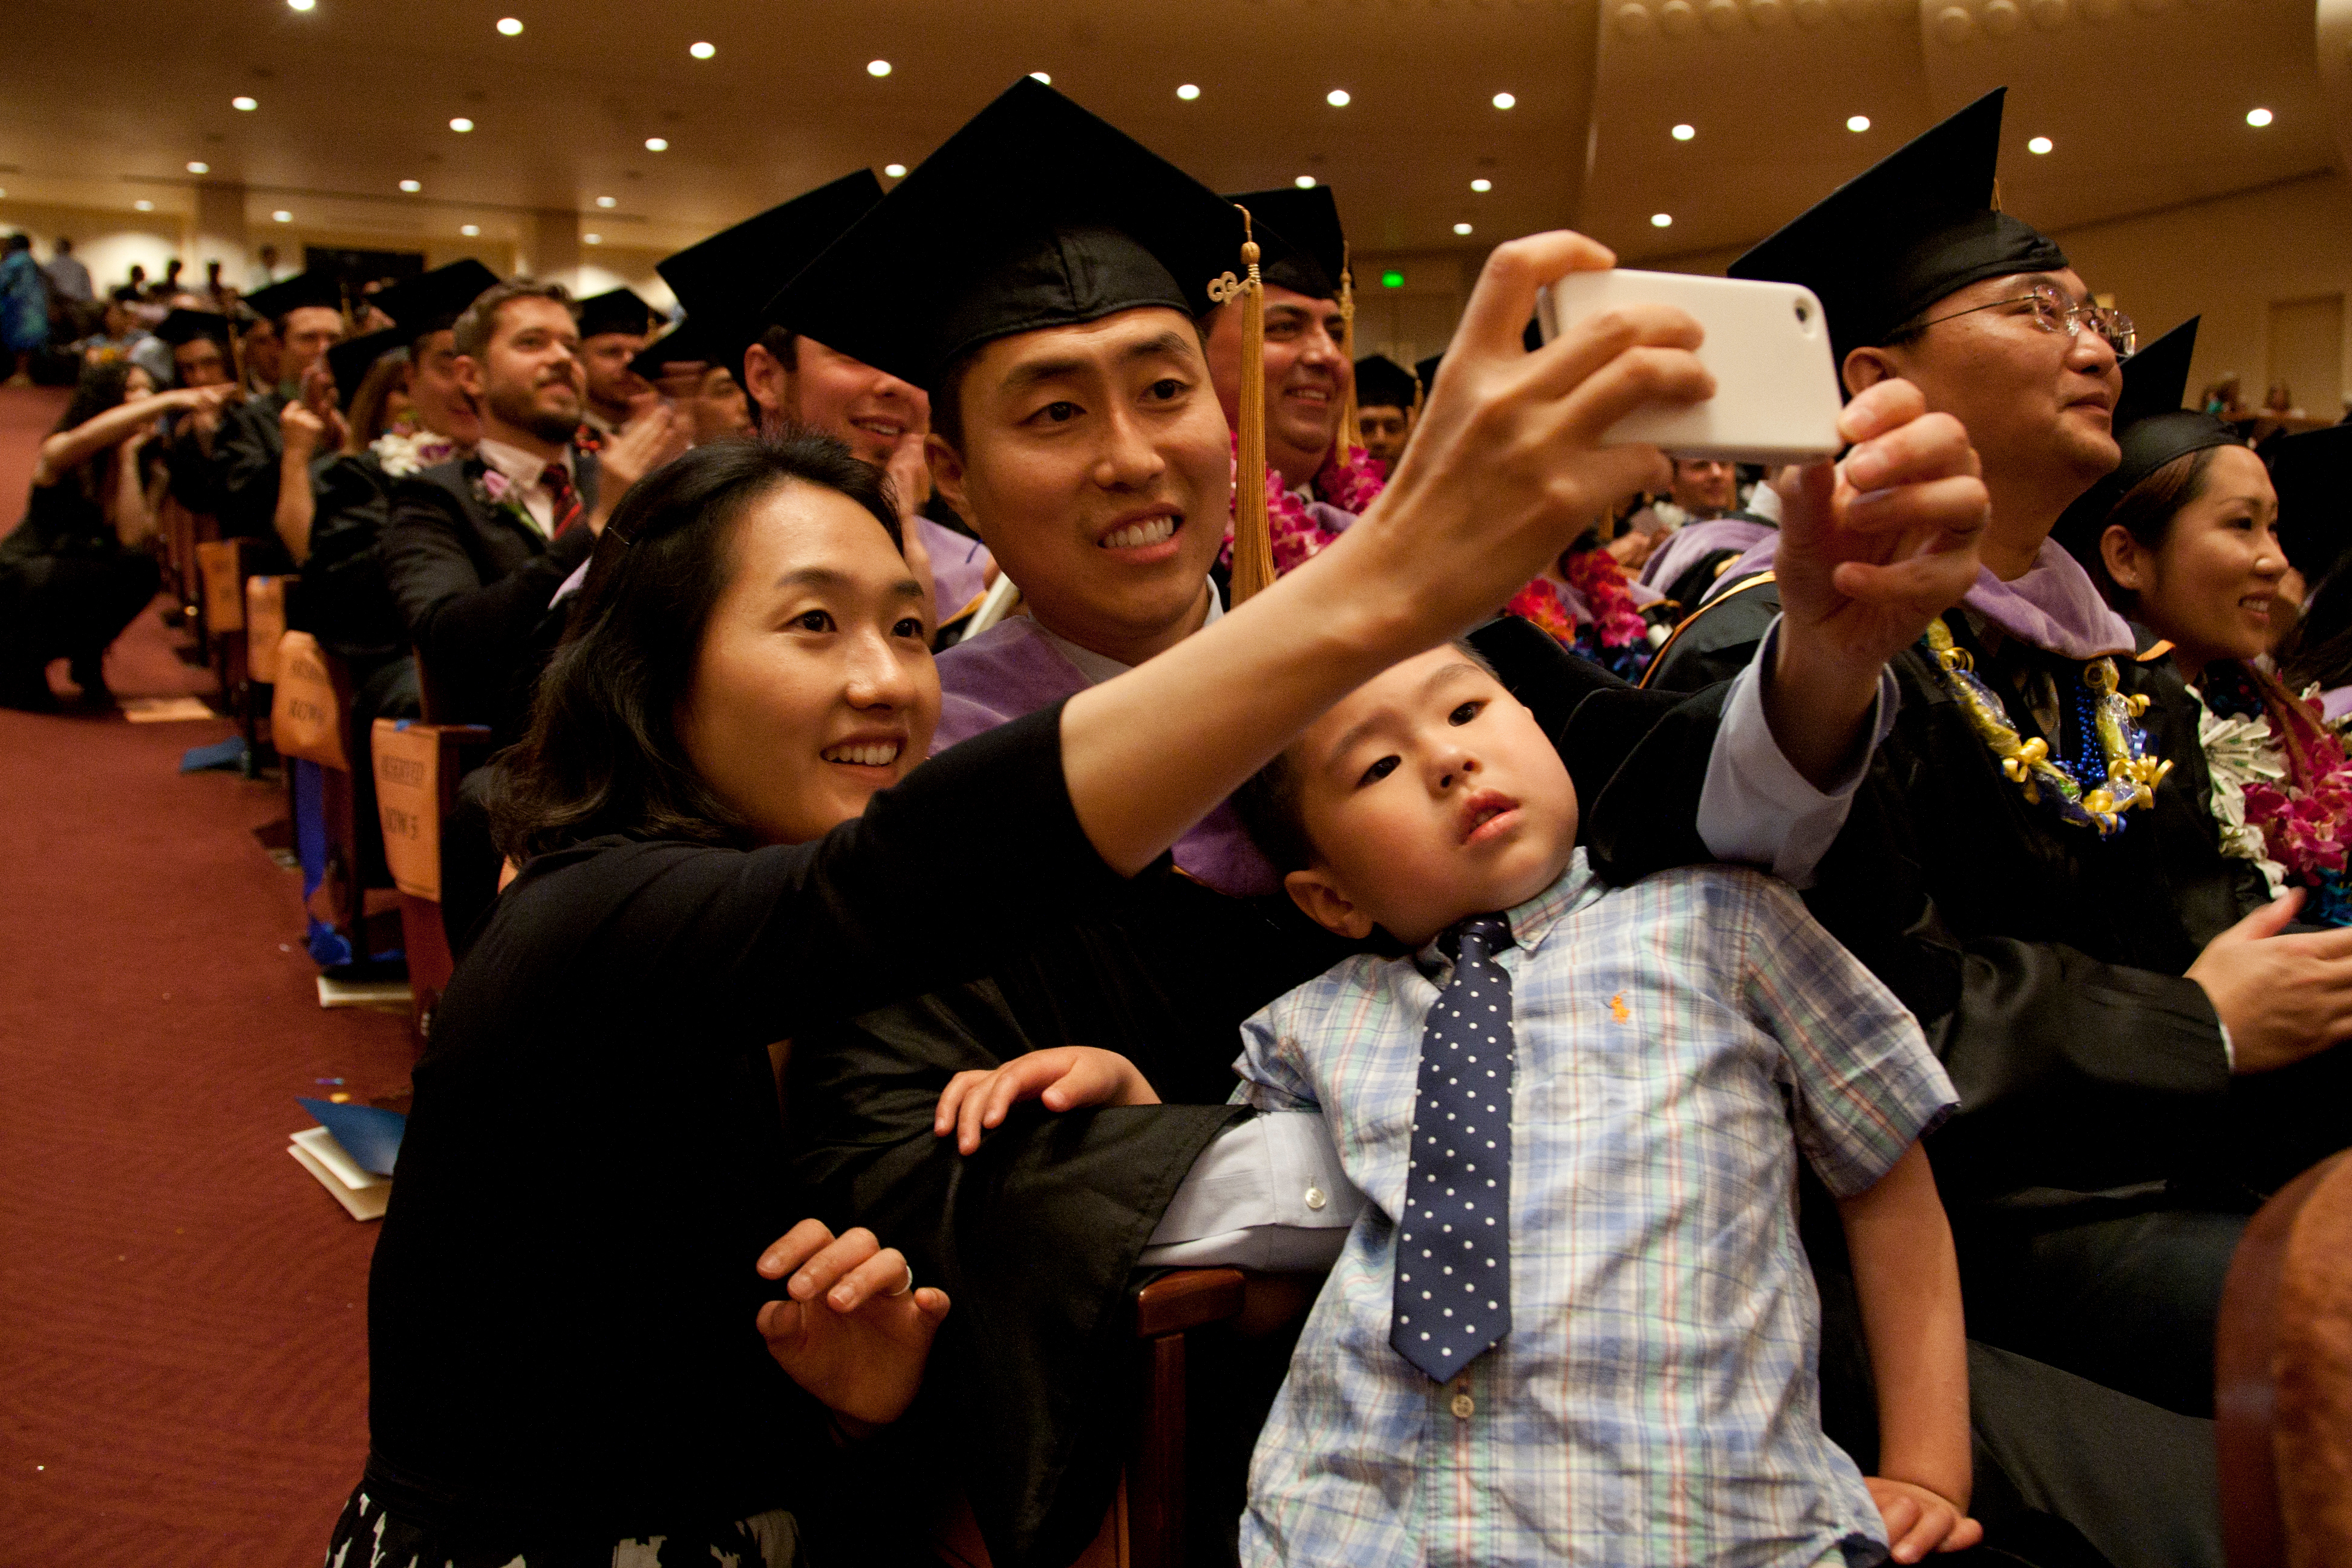 Dental school graduate Kwang Chang takes a family photo with his wife Myung Hee Song and son, Ethan, 4, during the commencement ceremony.